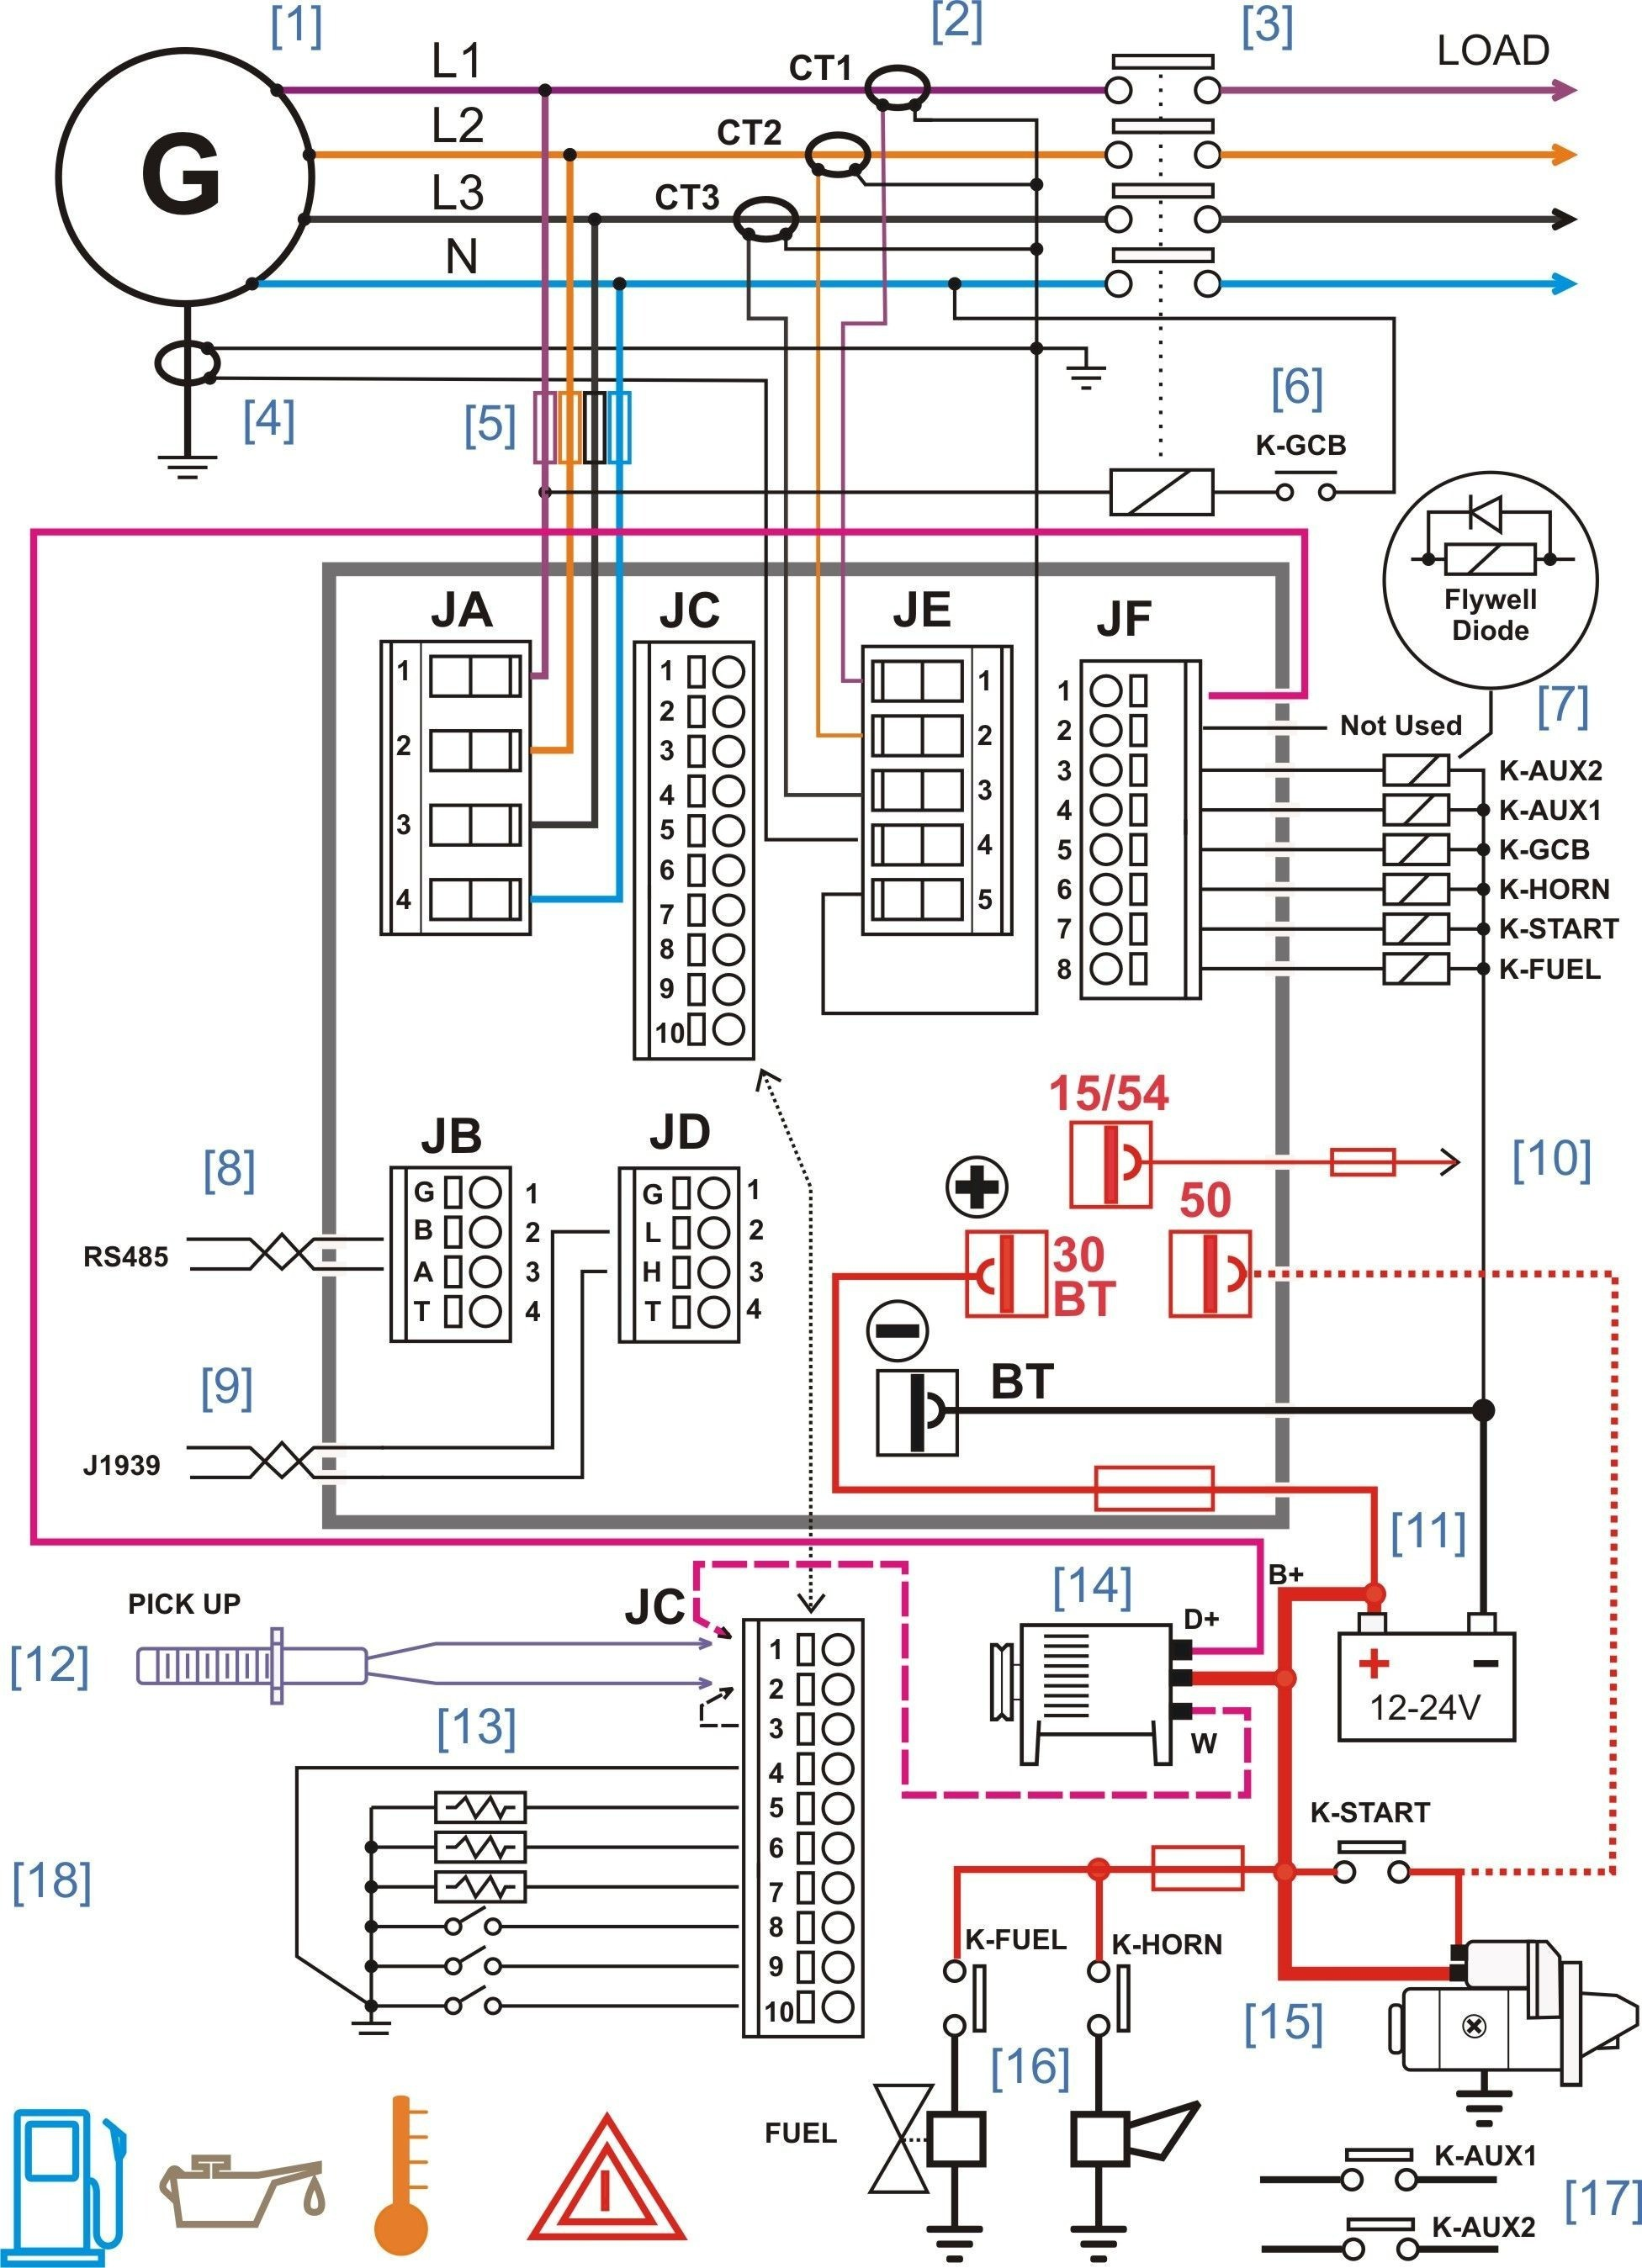 Electrical Wiring Diagram software for Mac Refrence Electrical Circuit Diagram software originalstylophone